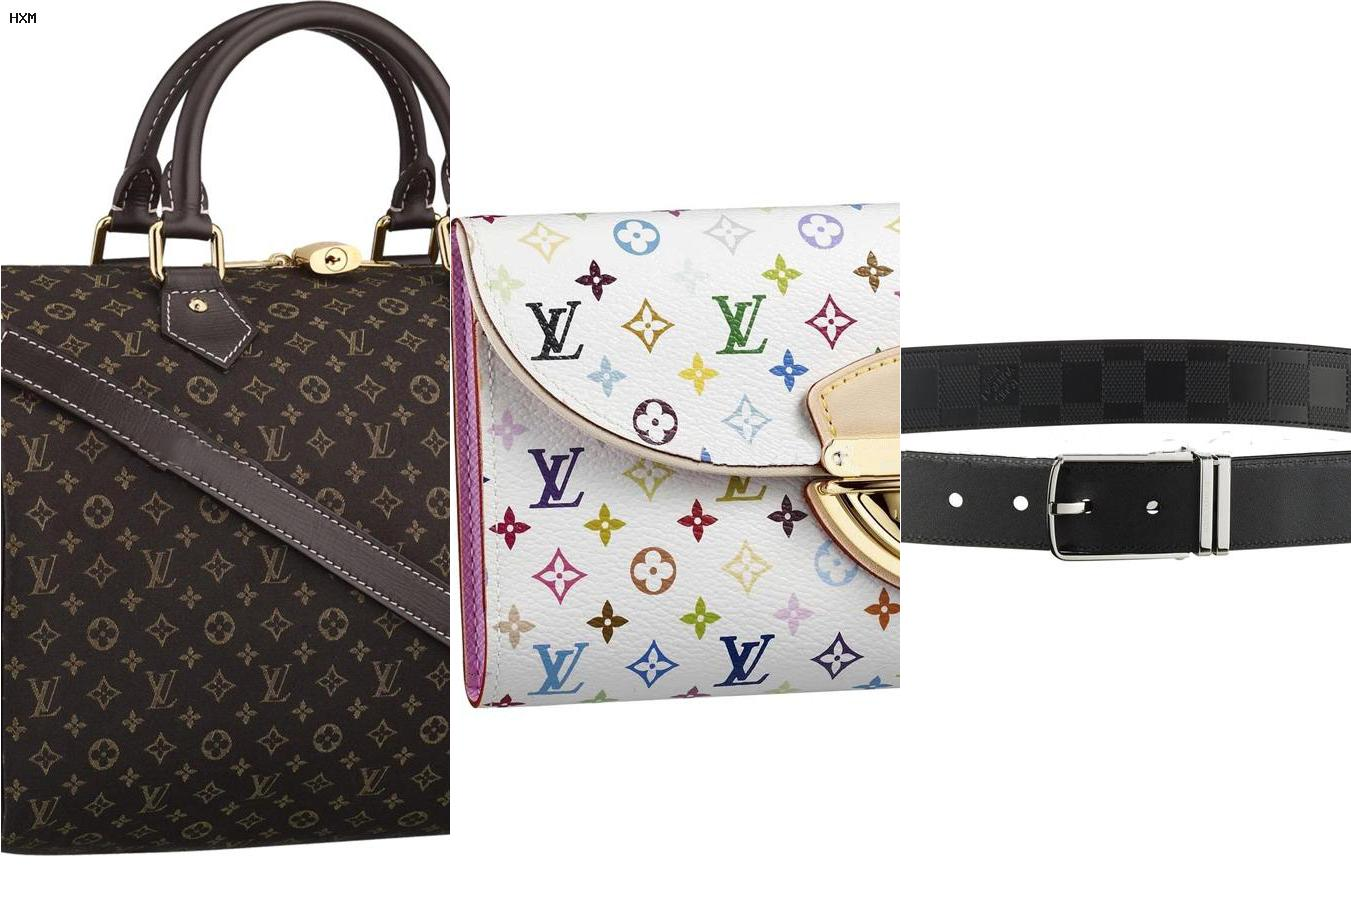 sac monogram louis vuitton